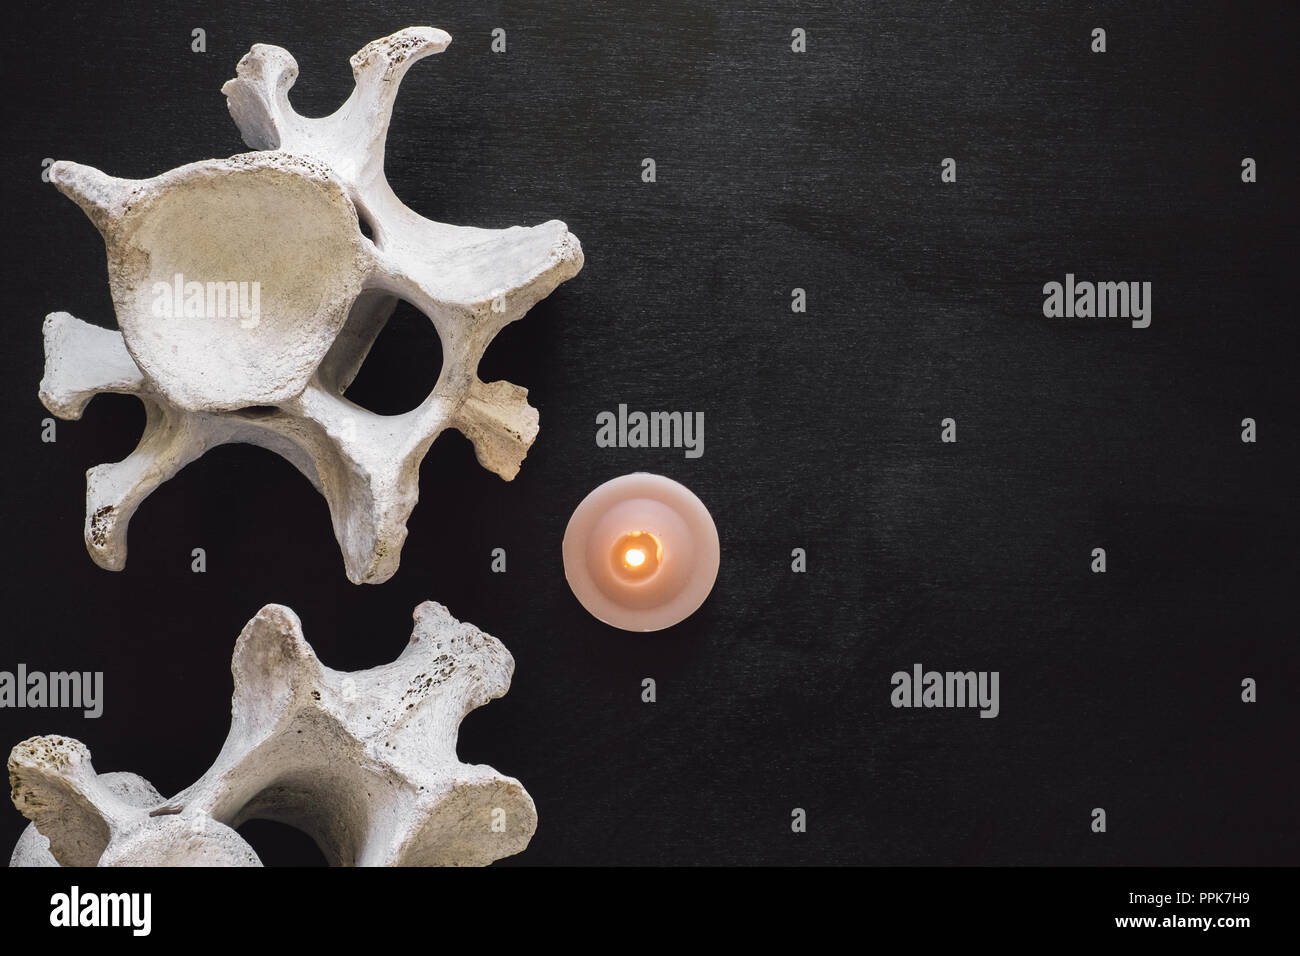 Animal Vertebrae on Black Table with Lit Candle with Space for Copy - Stock Image